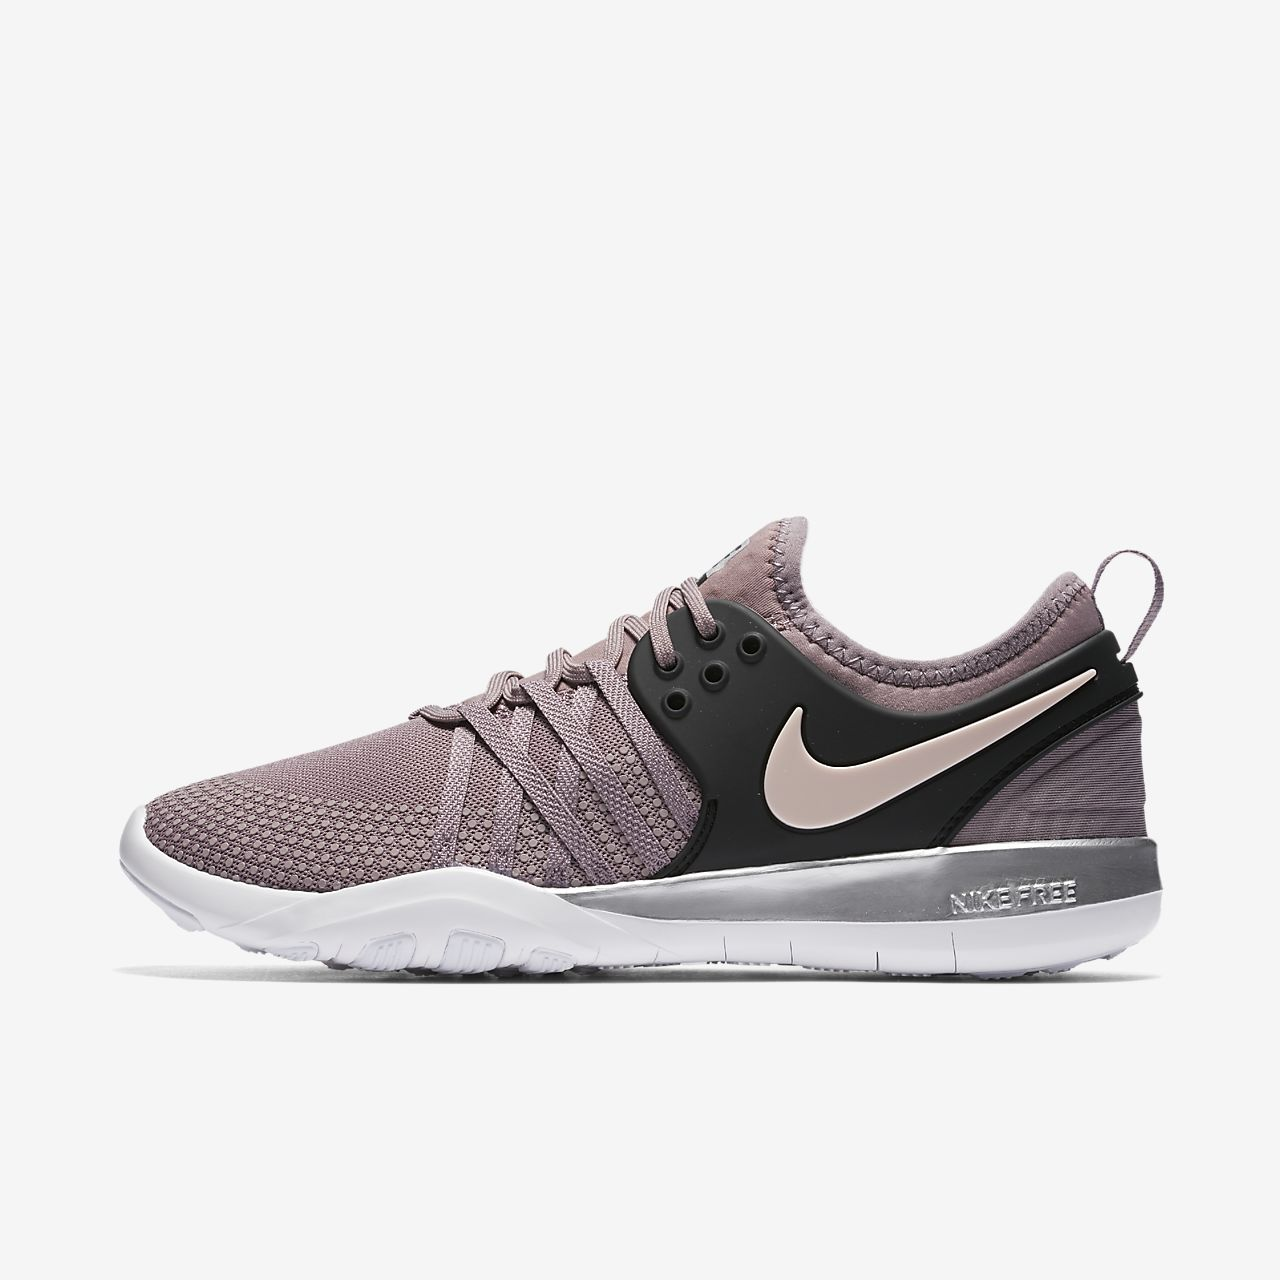 177fa2236683 Nike Free TR 7 Chrome Blush Women s Gym HIIT Cross Training Shoe ...